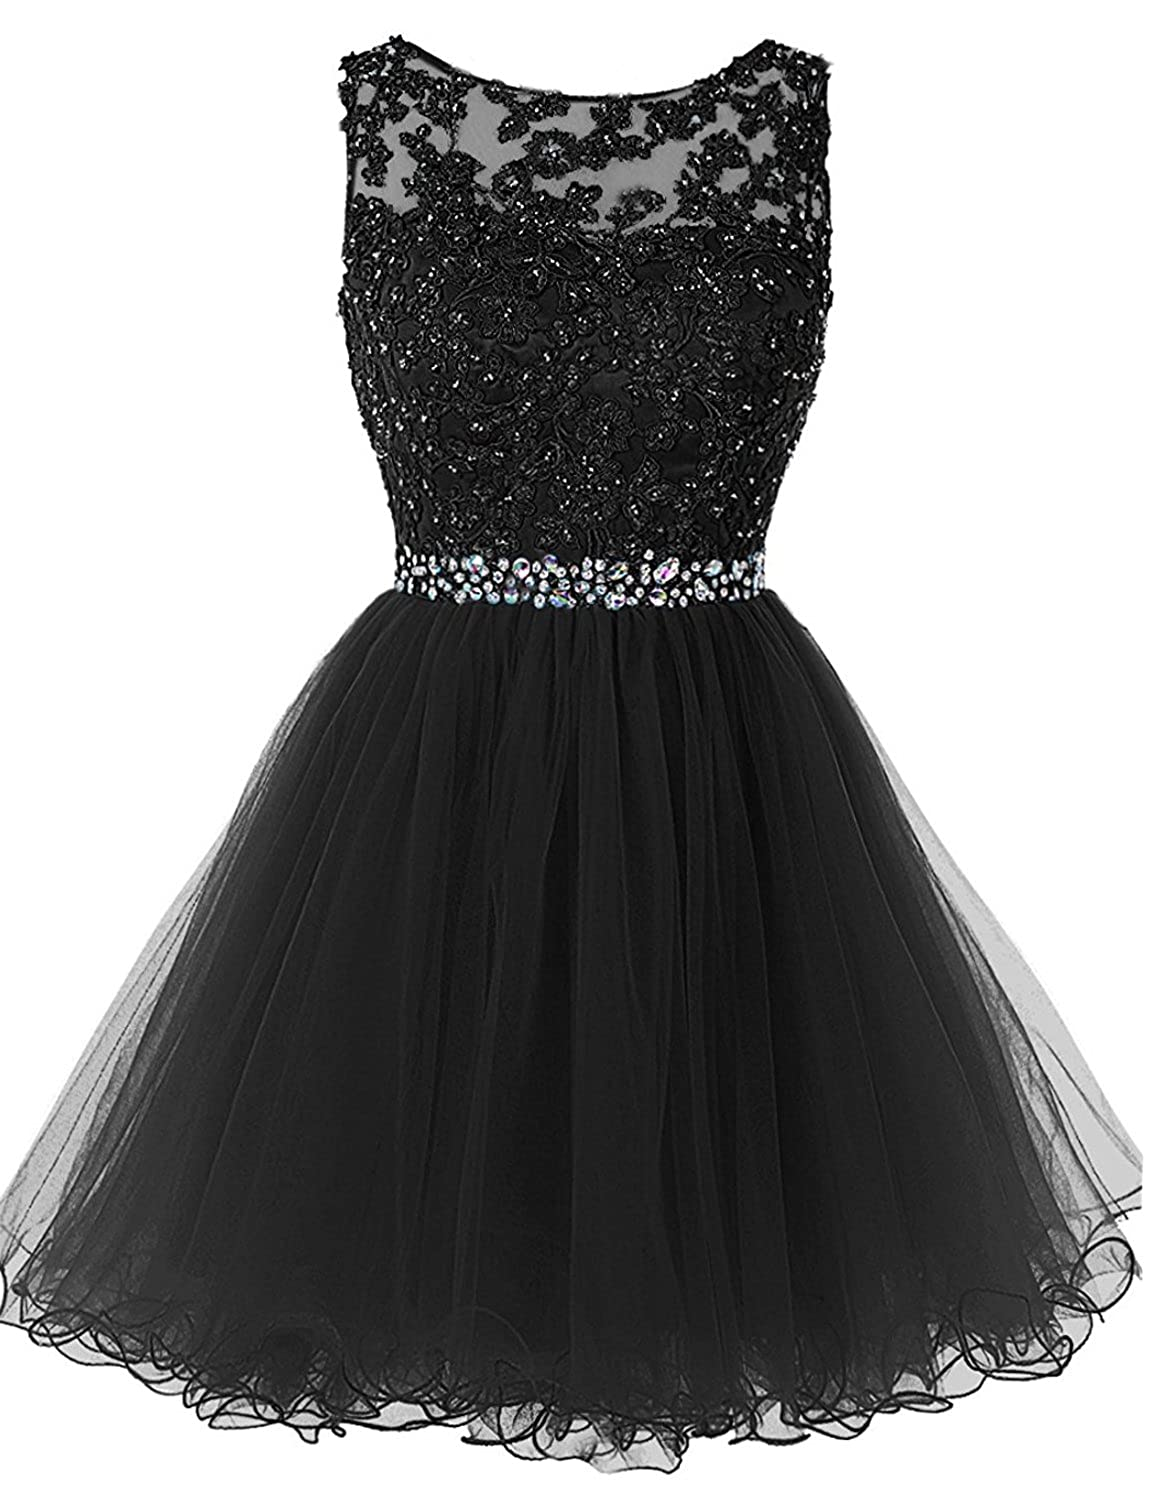 361black Sarahbridal Women's Short Tulle Beading Homecoming Dresses 2019 Prom Party Gowns